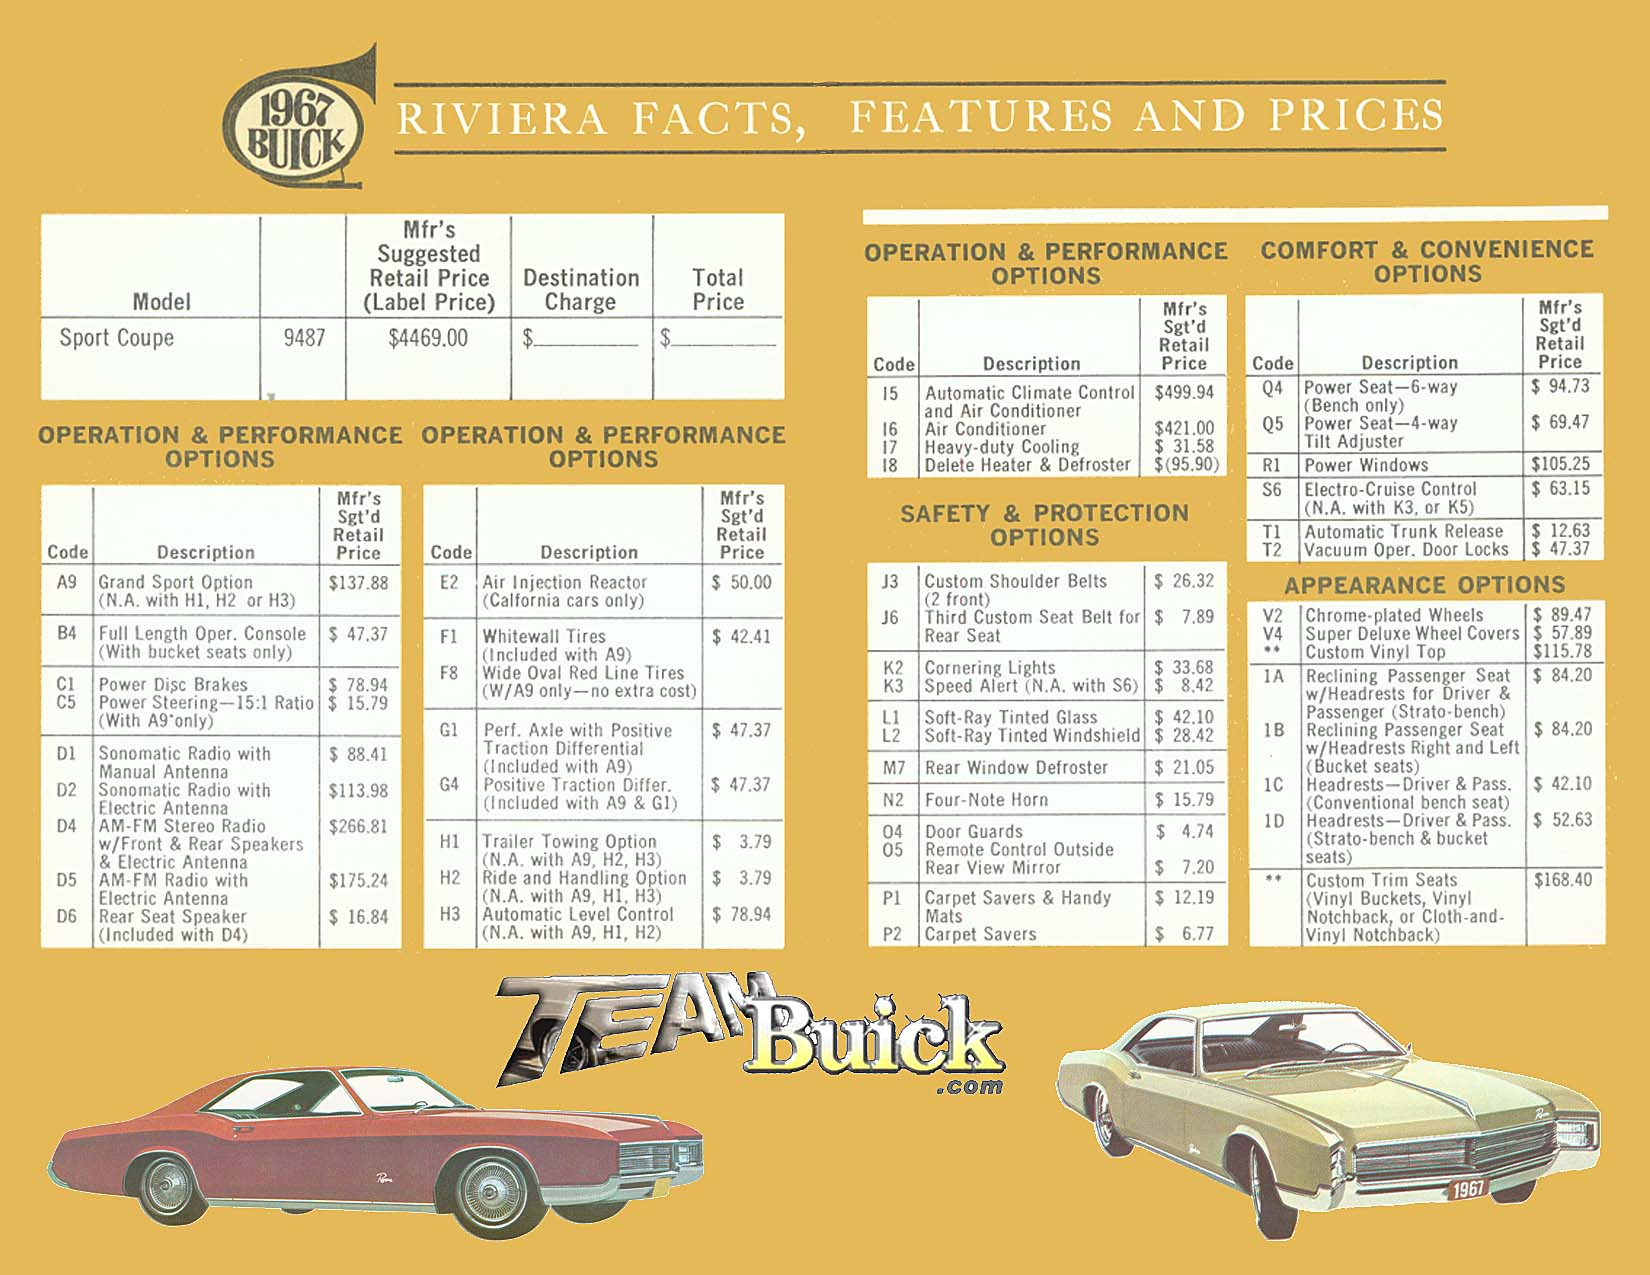 1967 Buick Riviera Options and Codes